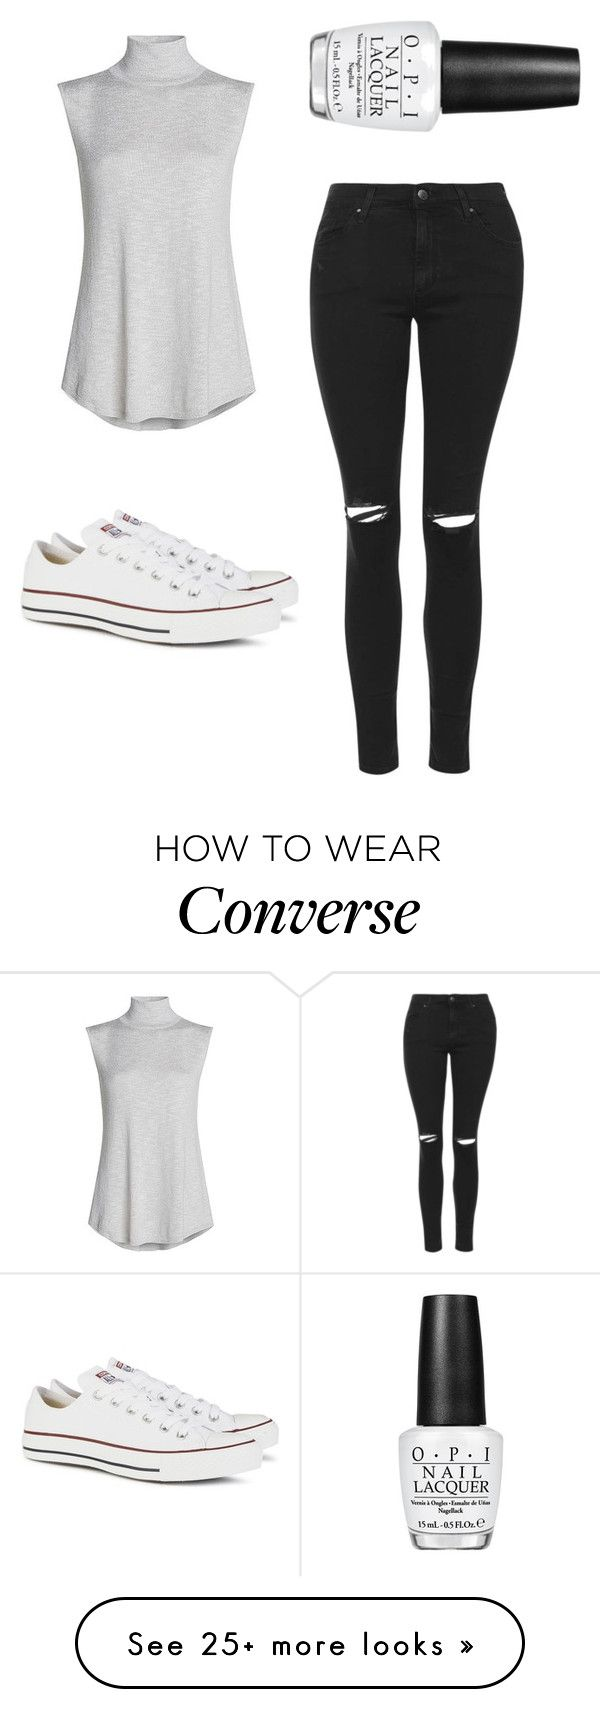 """""""converse"""" by burtonl on Polyvore featuring Topshop, NIC+ZOE, Converse and OPI"""